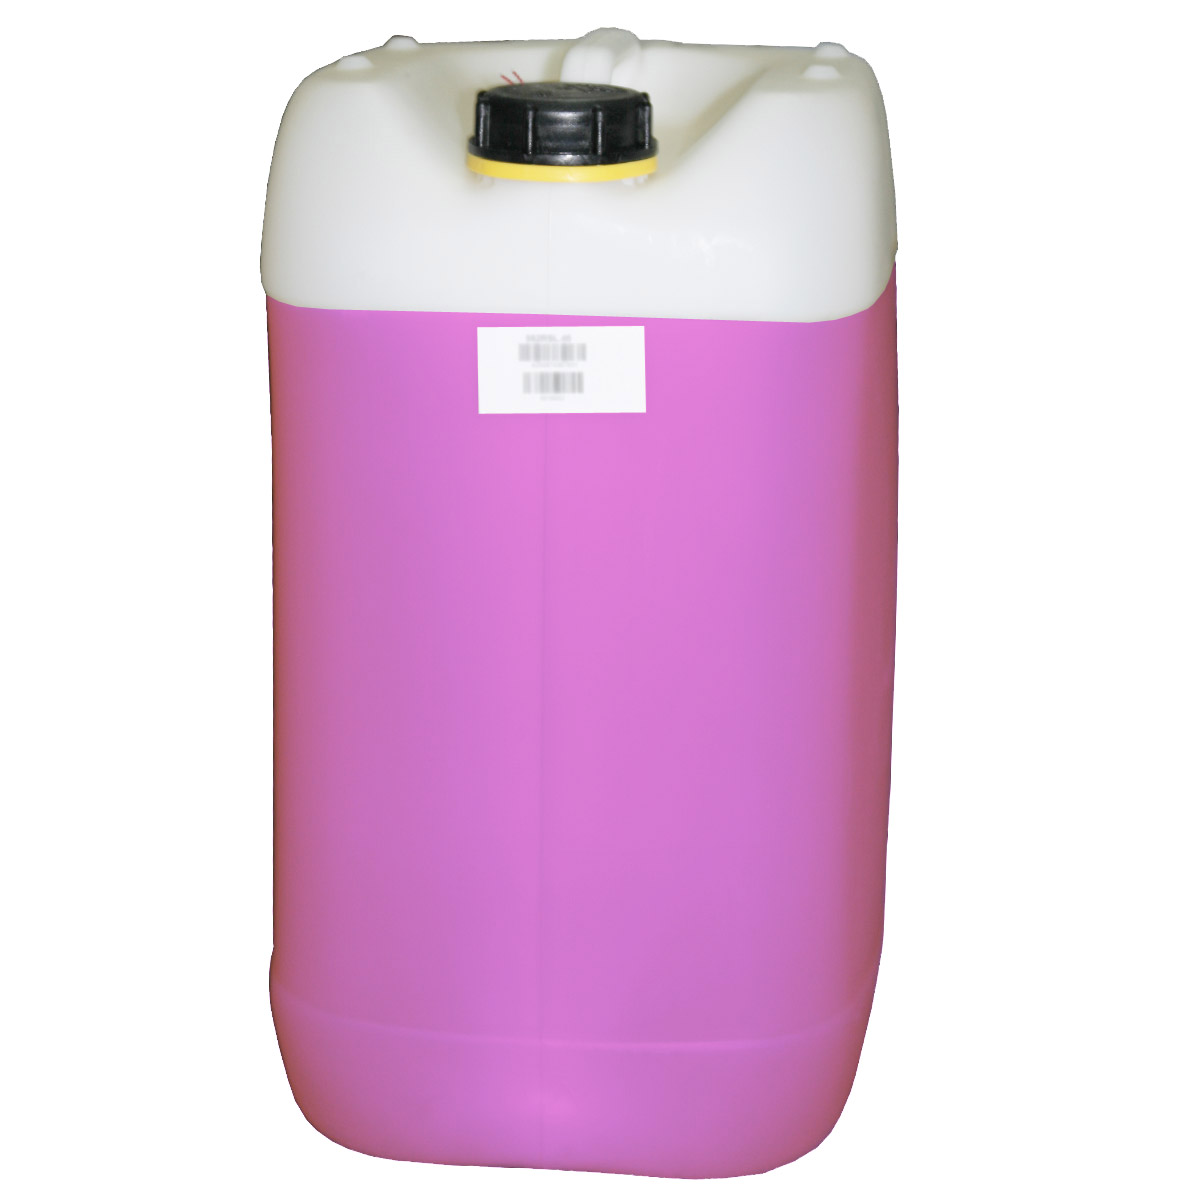 Cleaning fluid for print heads - pink, outside